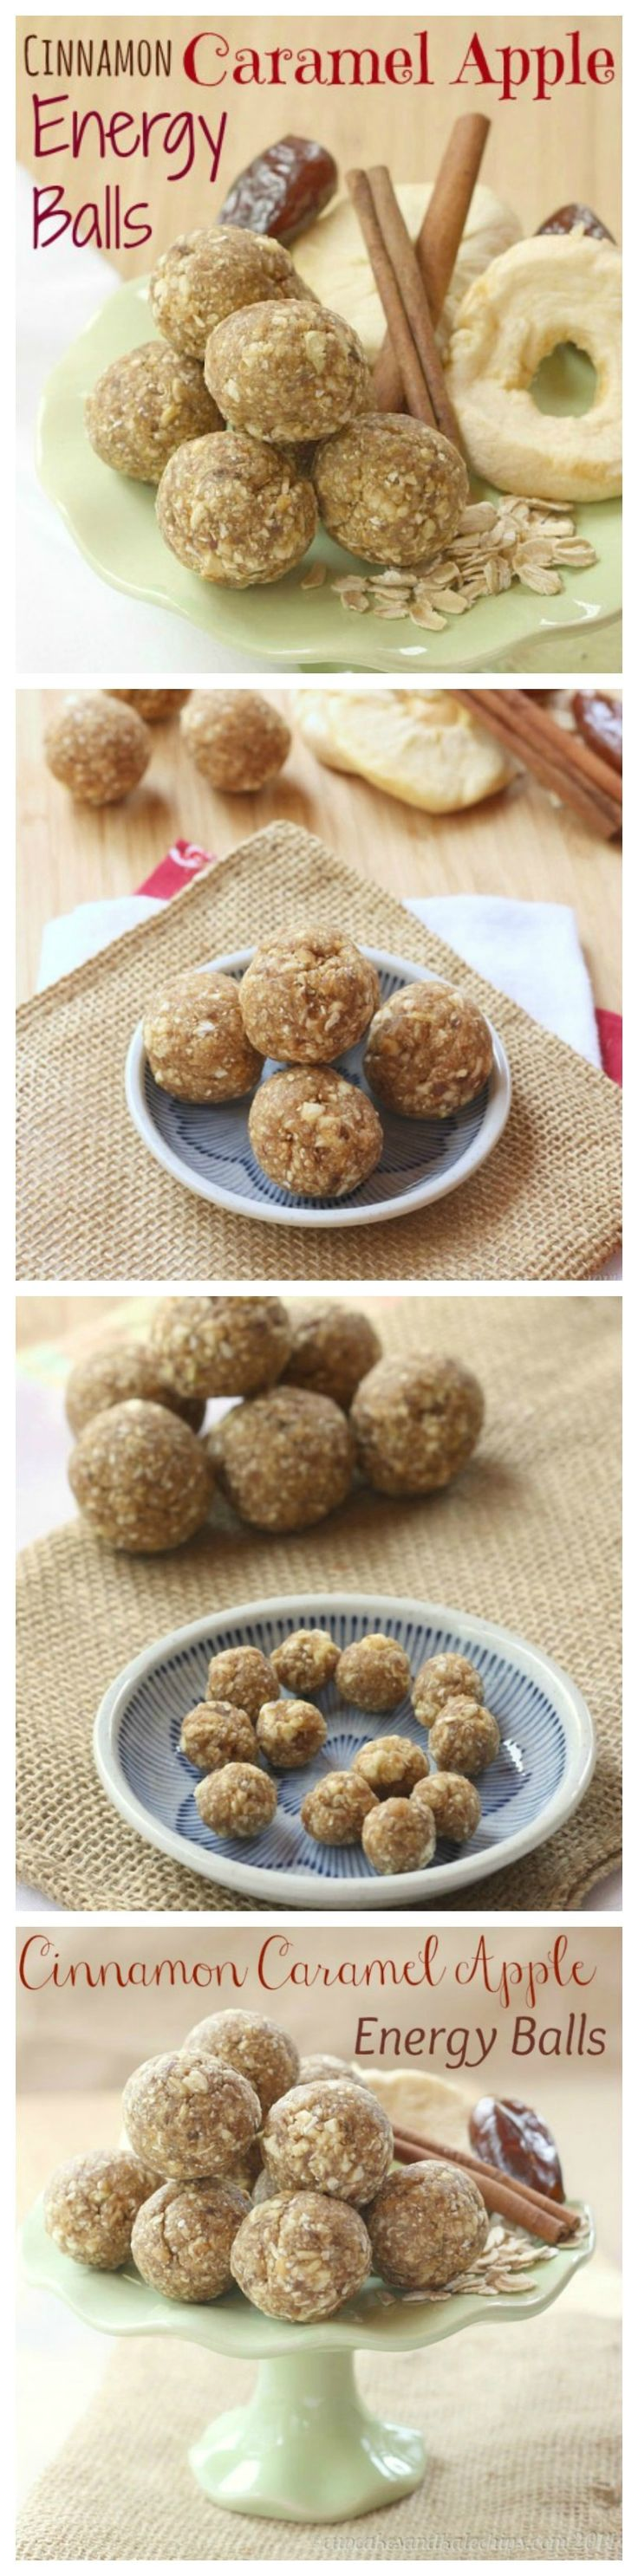 Healthy Snacks for Kids: Cinnamon Caramel Apple Energy Balls. Sub quinoa for the oats